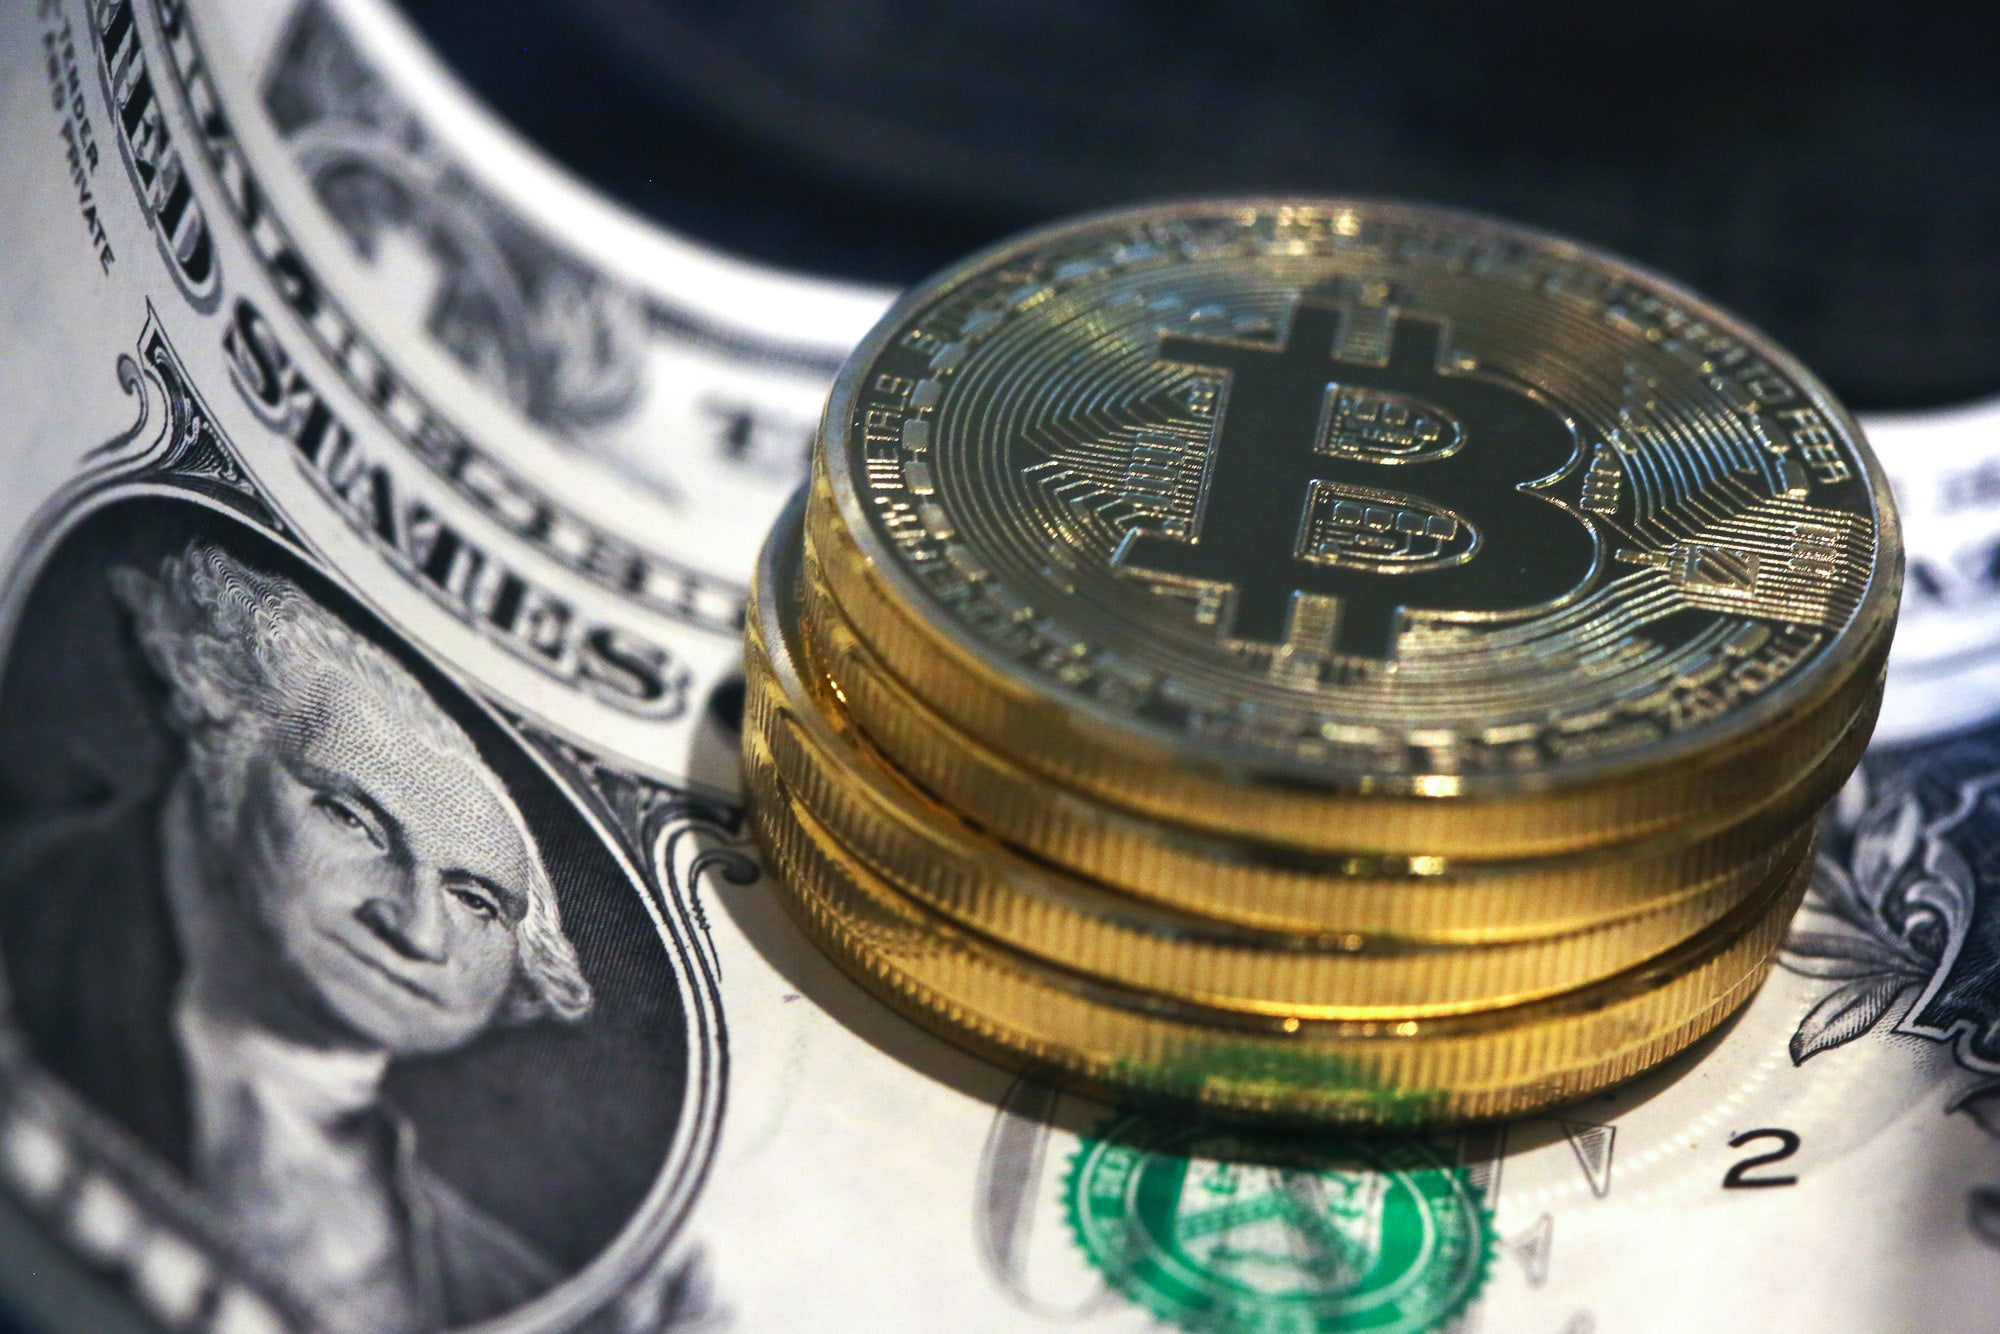 As Biden preps $3T stimulus, Bitcoin could be set to erupt